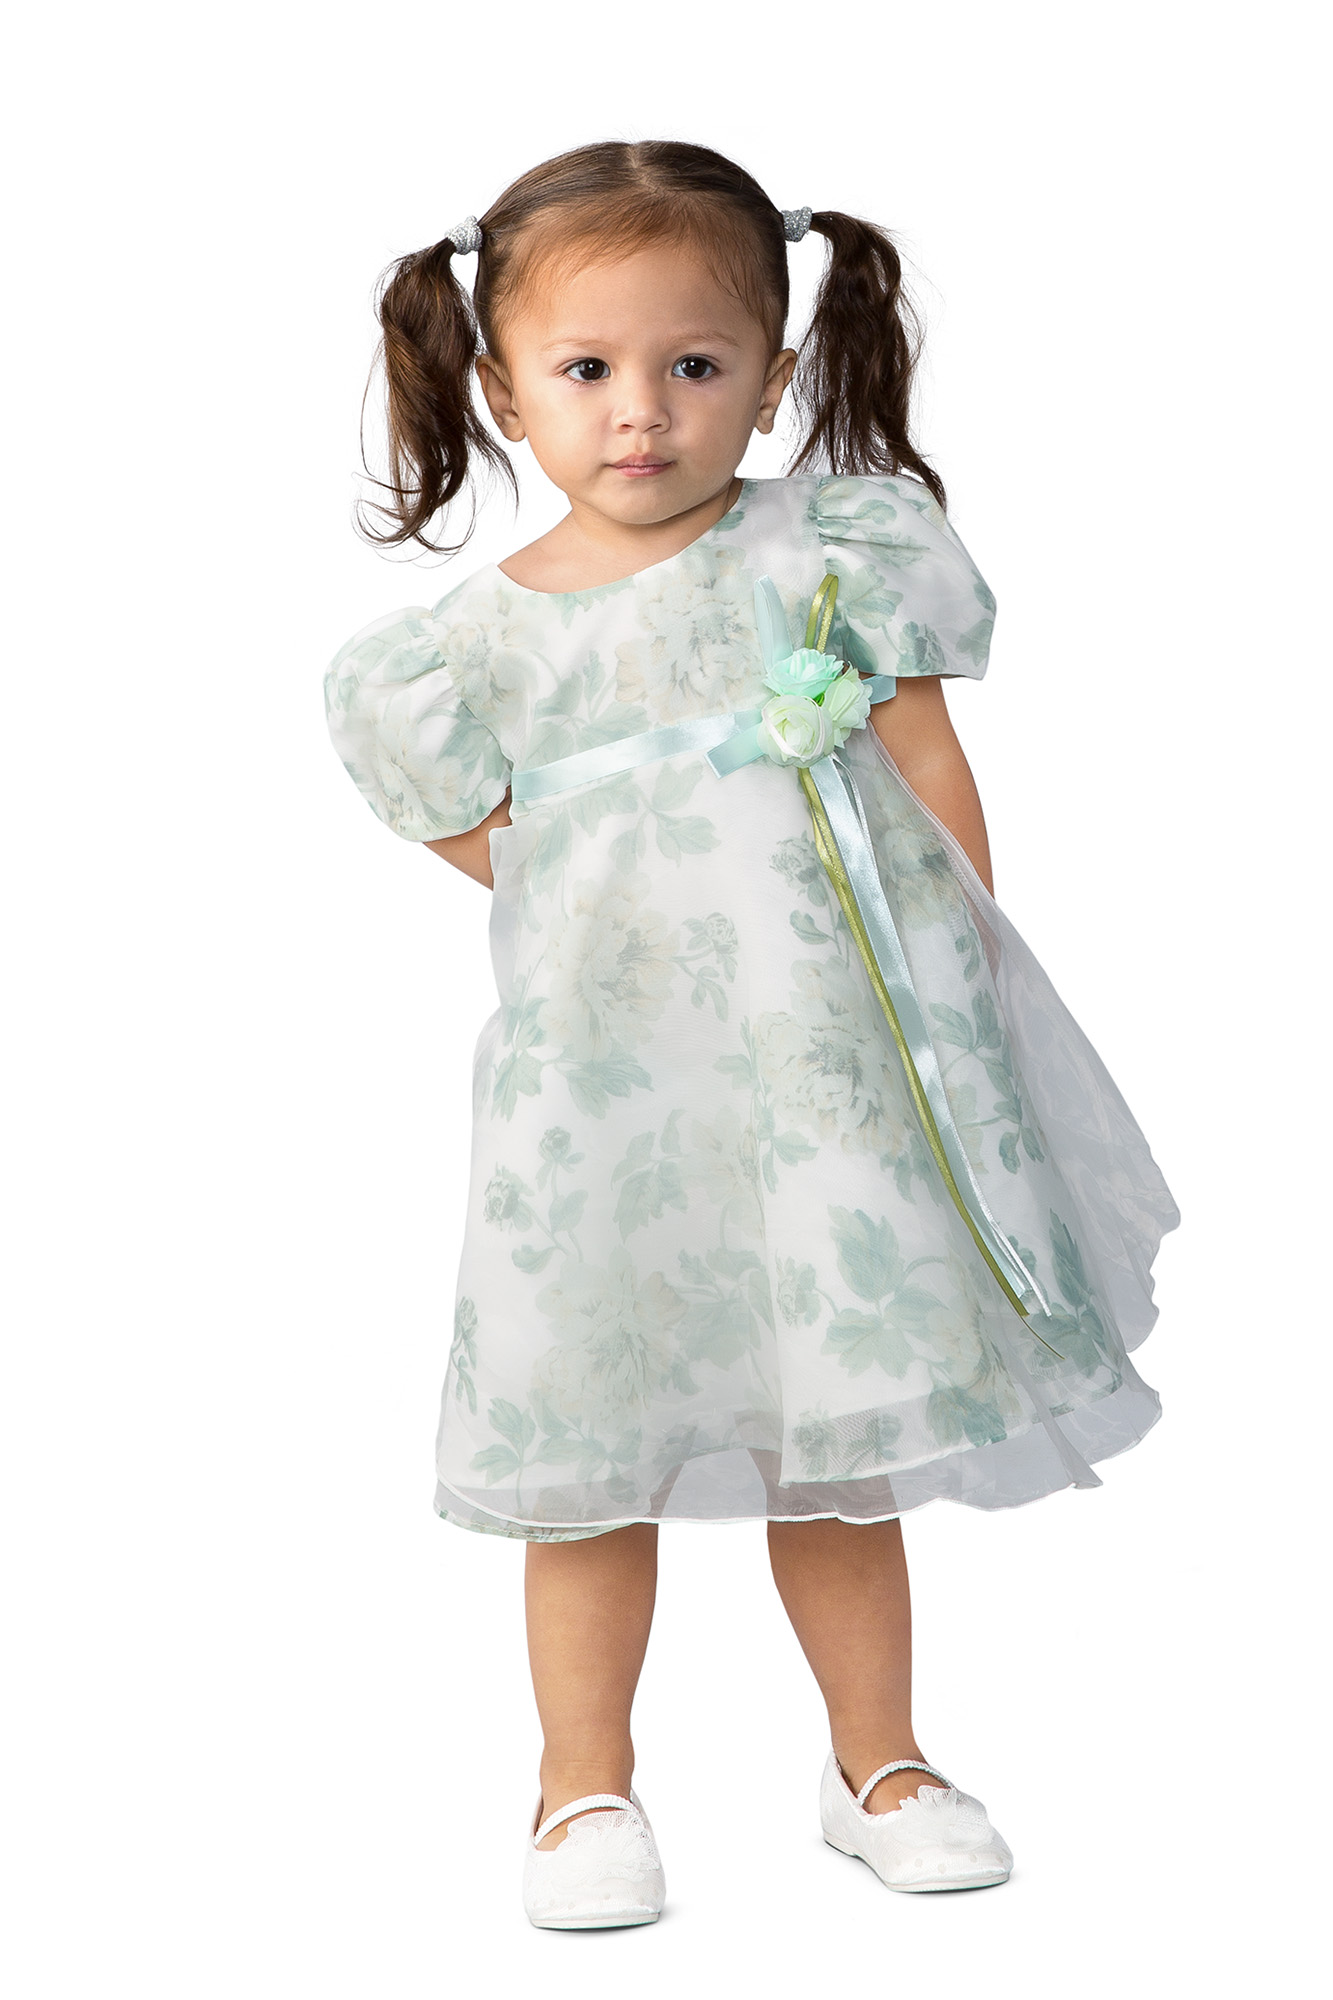 Where to buy flower girl dresses the wedding vow apart from dolling up flower girls their dresses make great gifts as birthday dresses or for special occasions like christmas and chinese new year izmirmasajfo